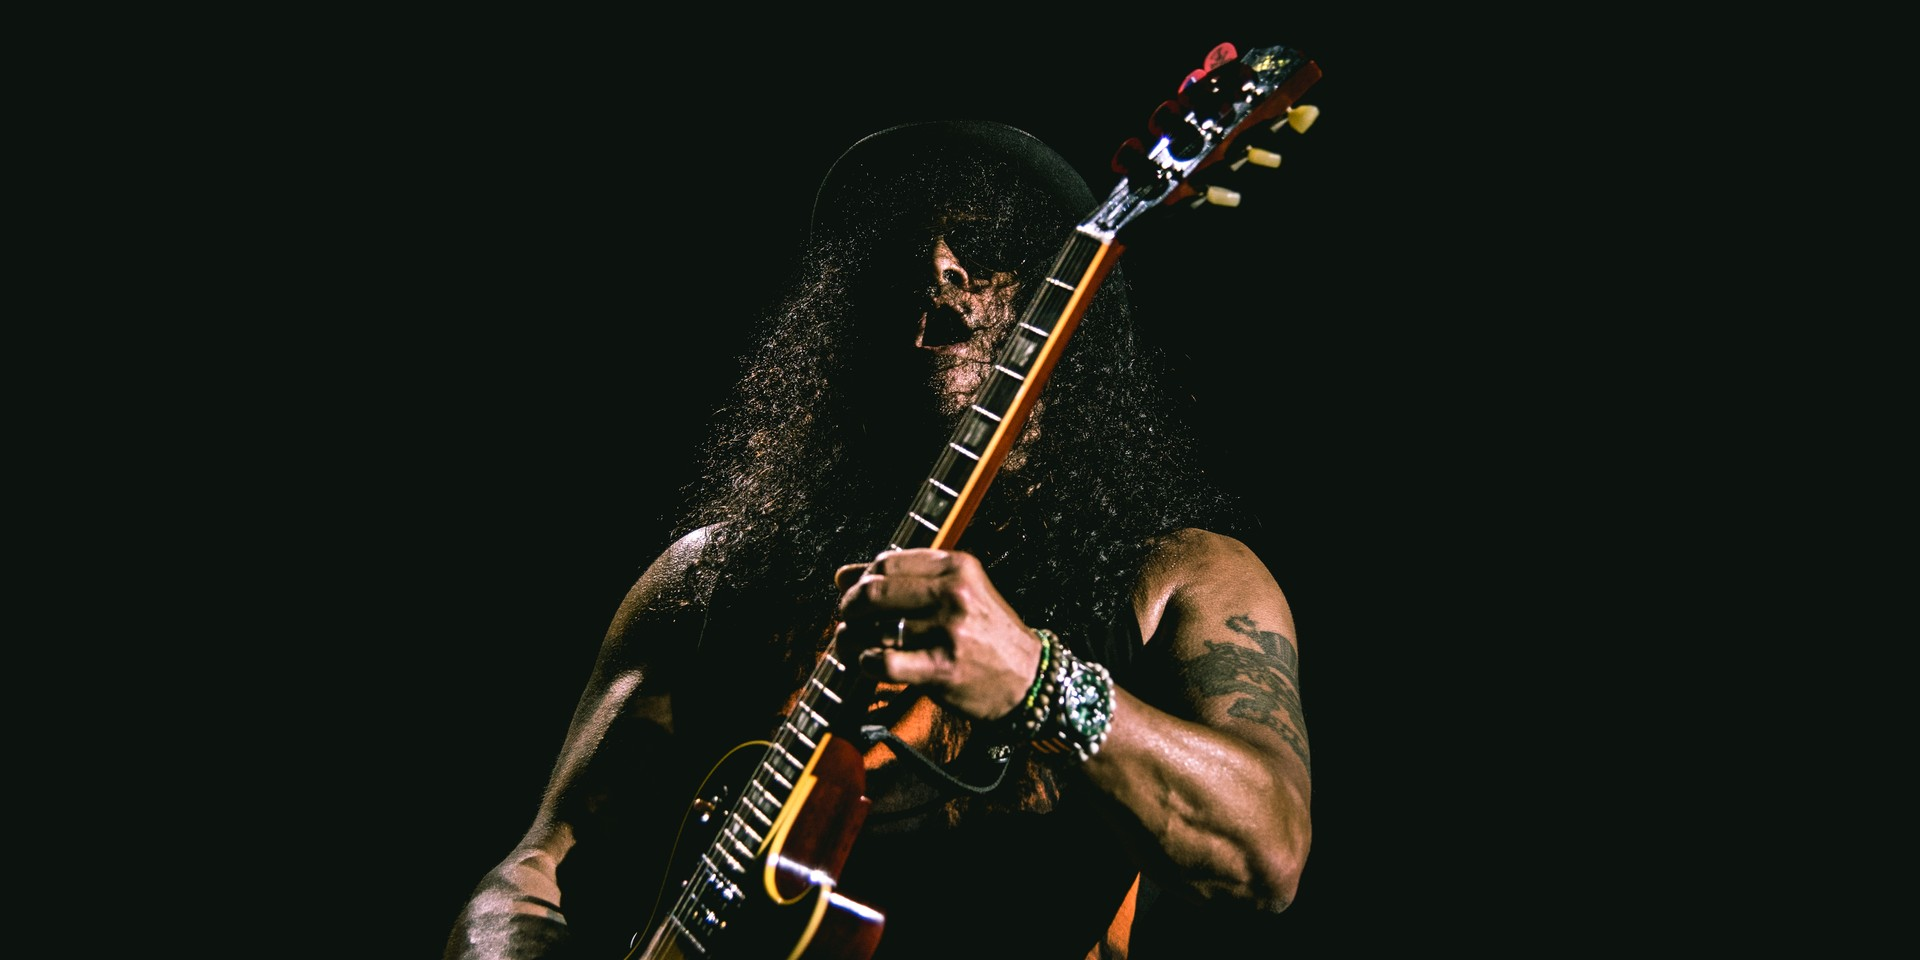 Slash featuring Myles Kennedy and The Conspirators invoke glory days of rock 'n' roll at Singapore show – gig report